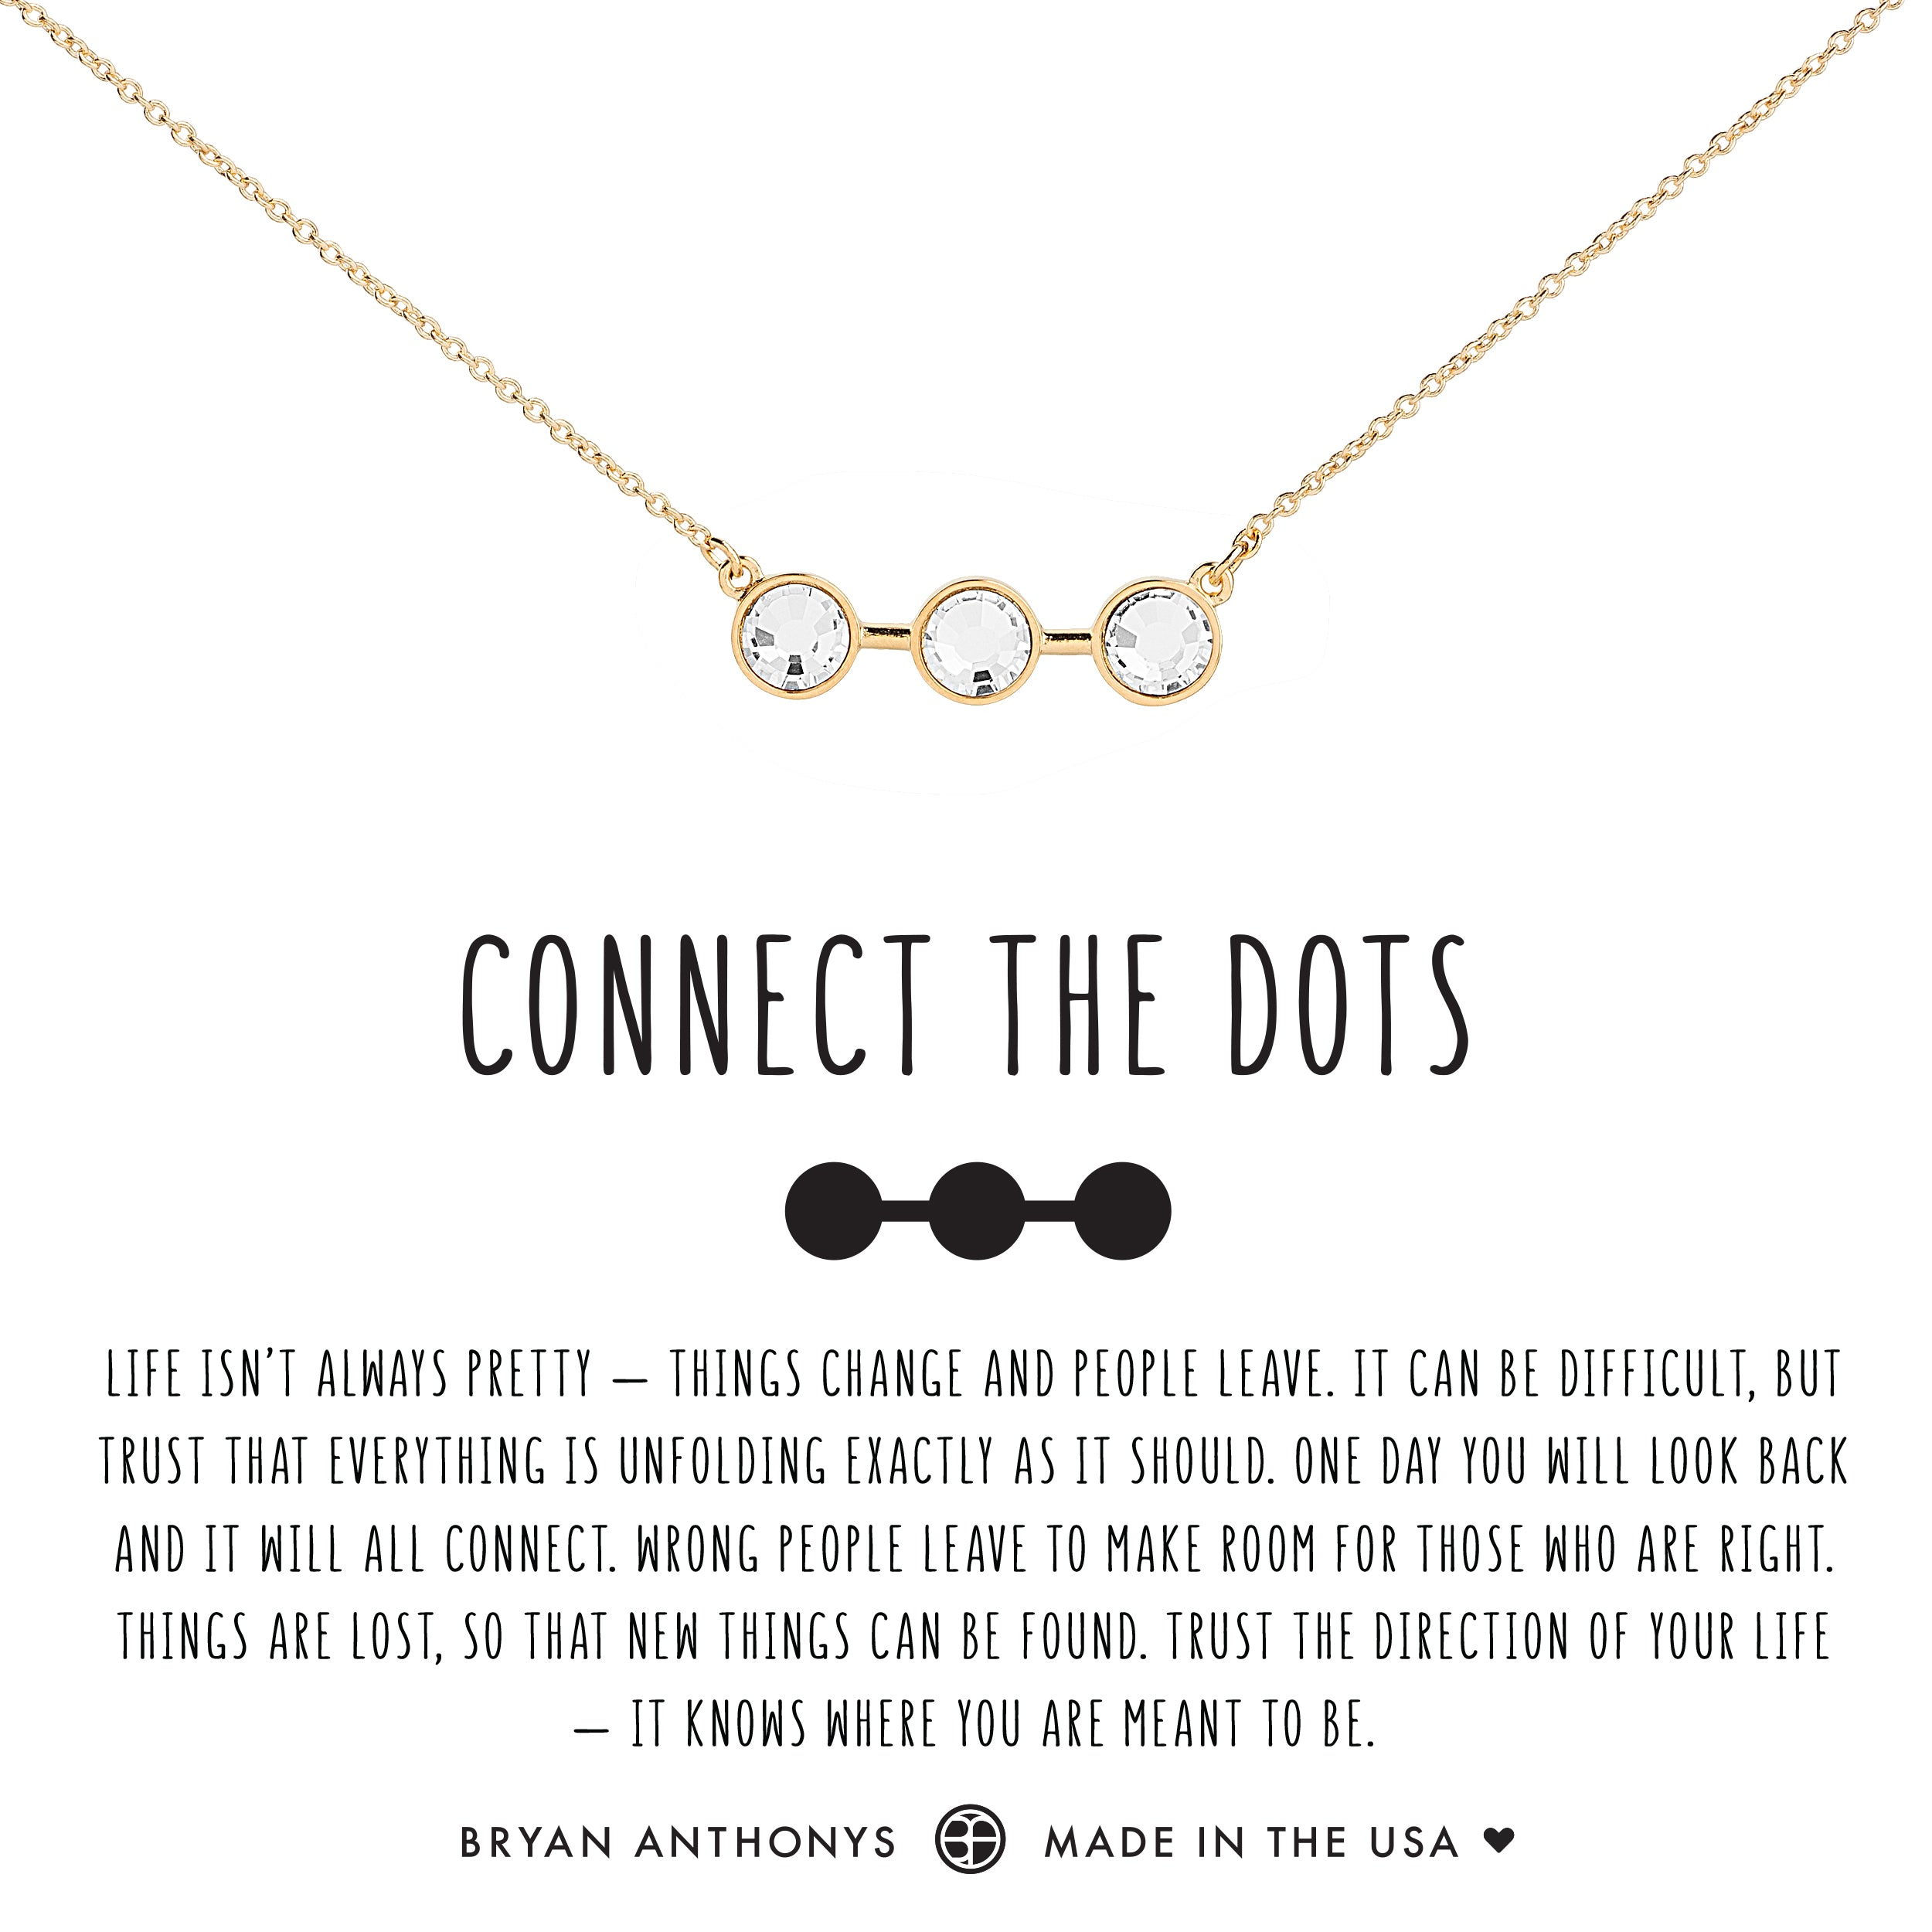 eeb249b3c Bryan Anthonys dainty connect the dots necklace 14k gold crystal